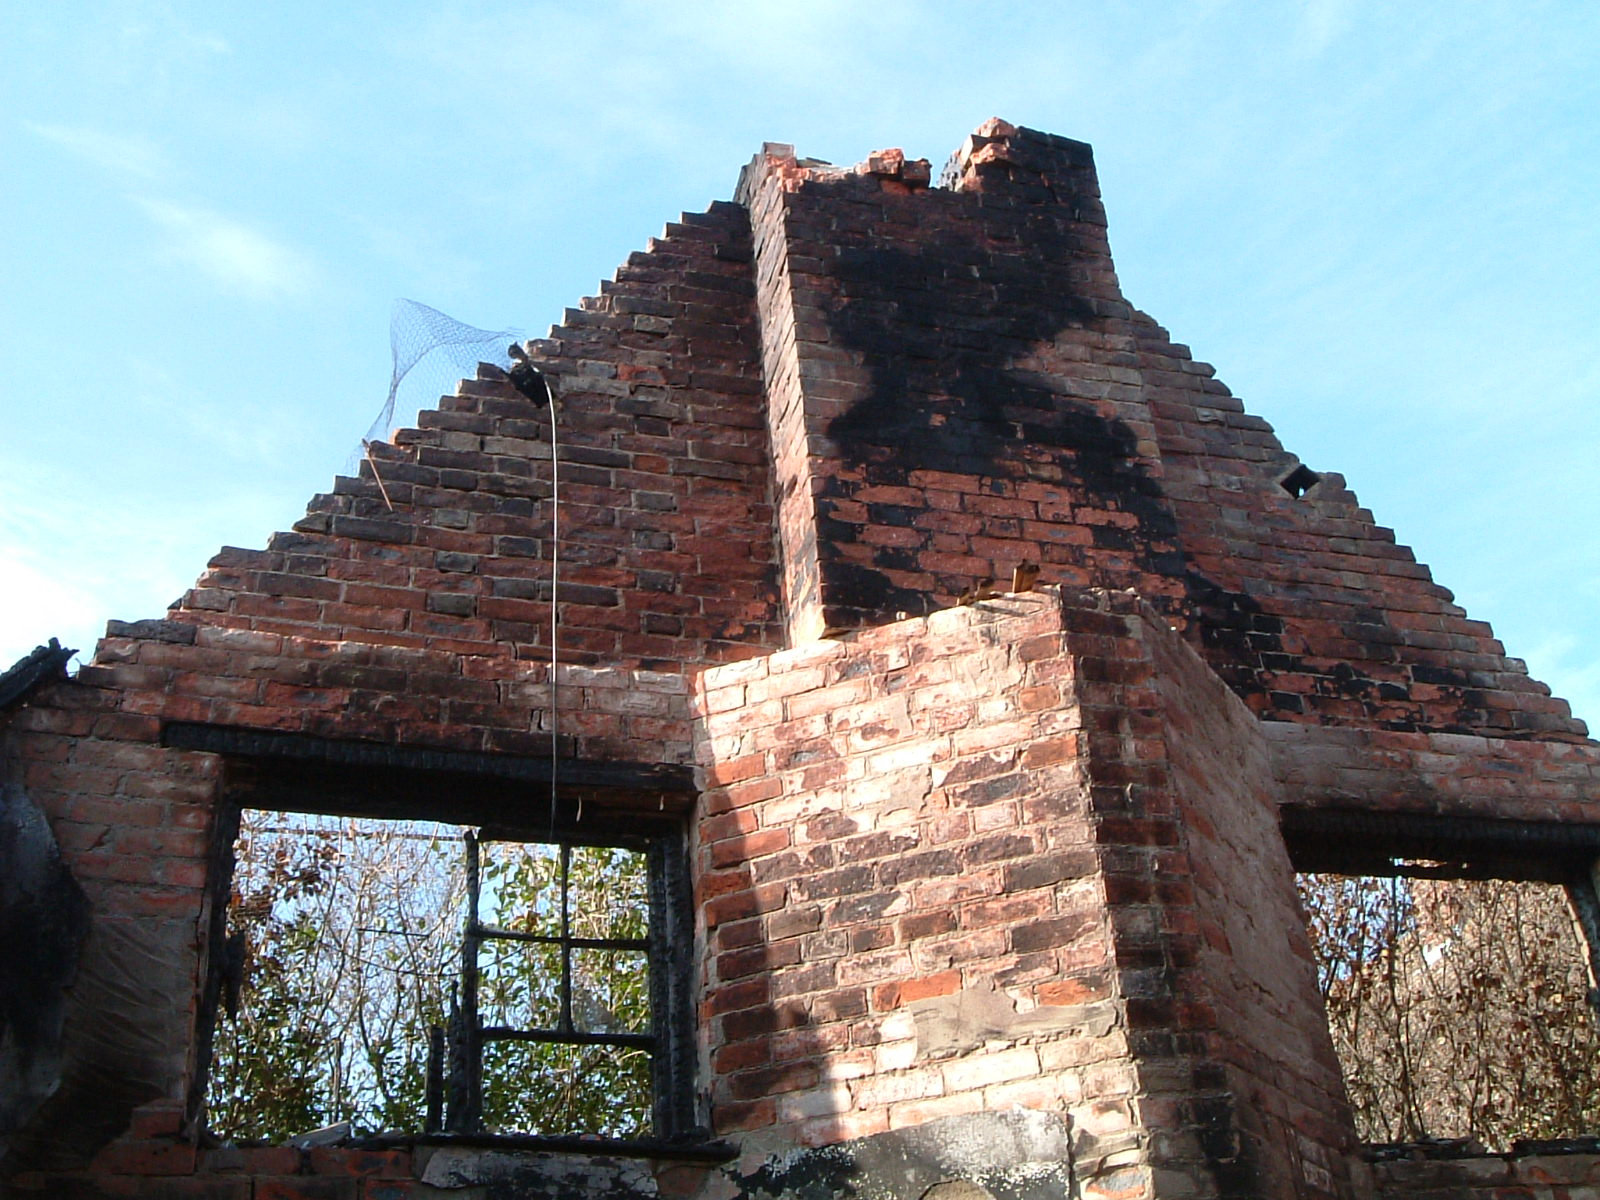 Heavily damage gable